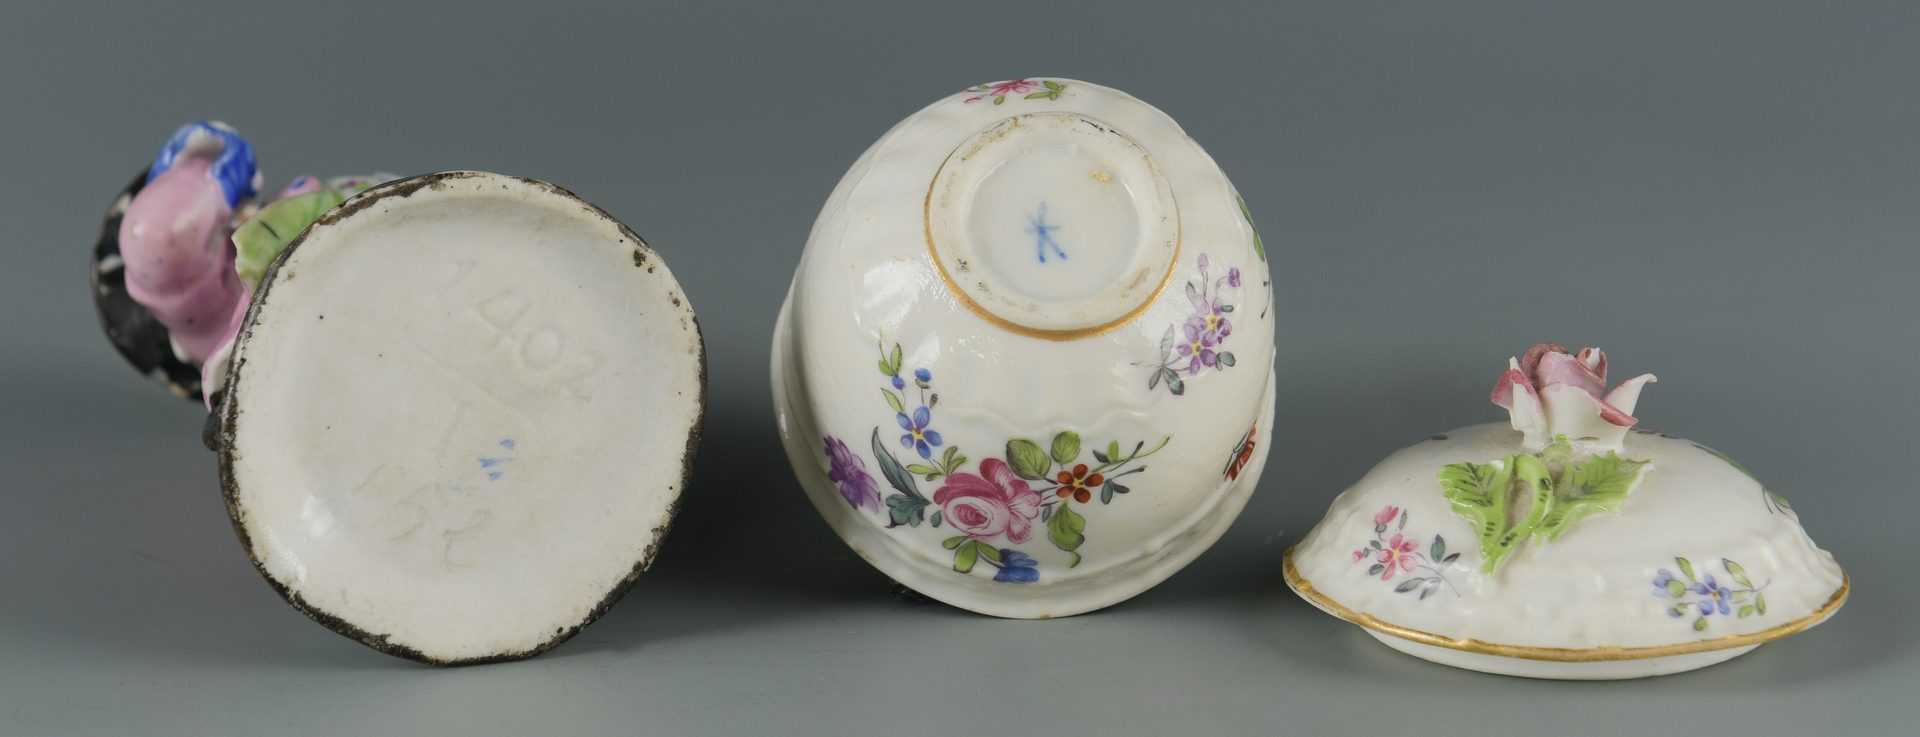 Lot : 4 European Porcelain items, incl. Samson